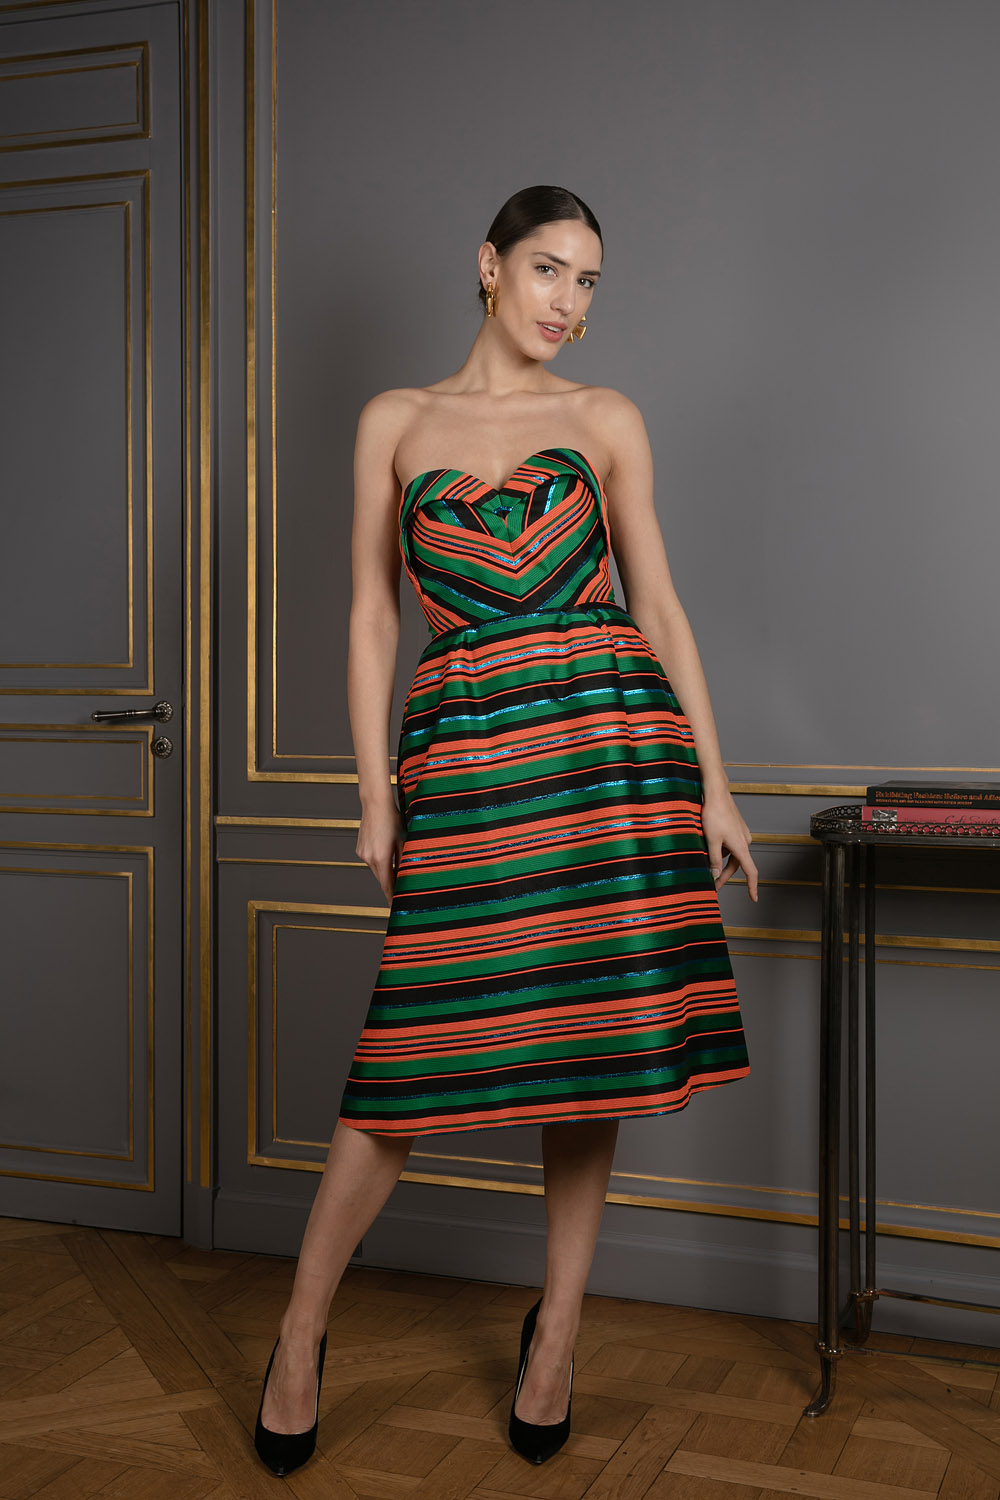 Ribbon striped bustier dress with sweetheart neckline